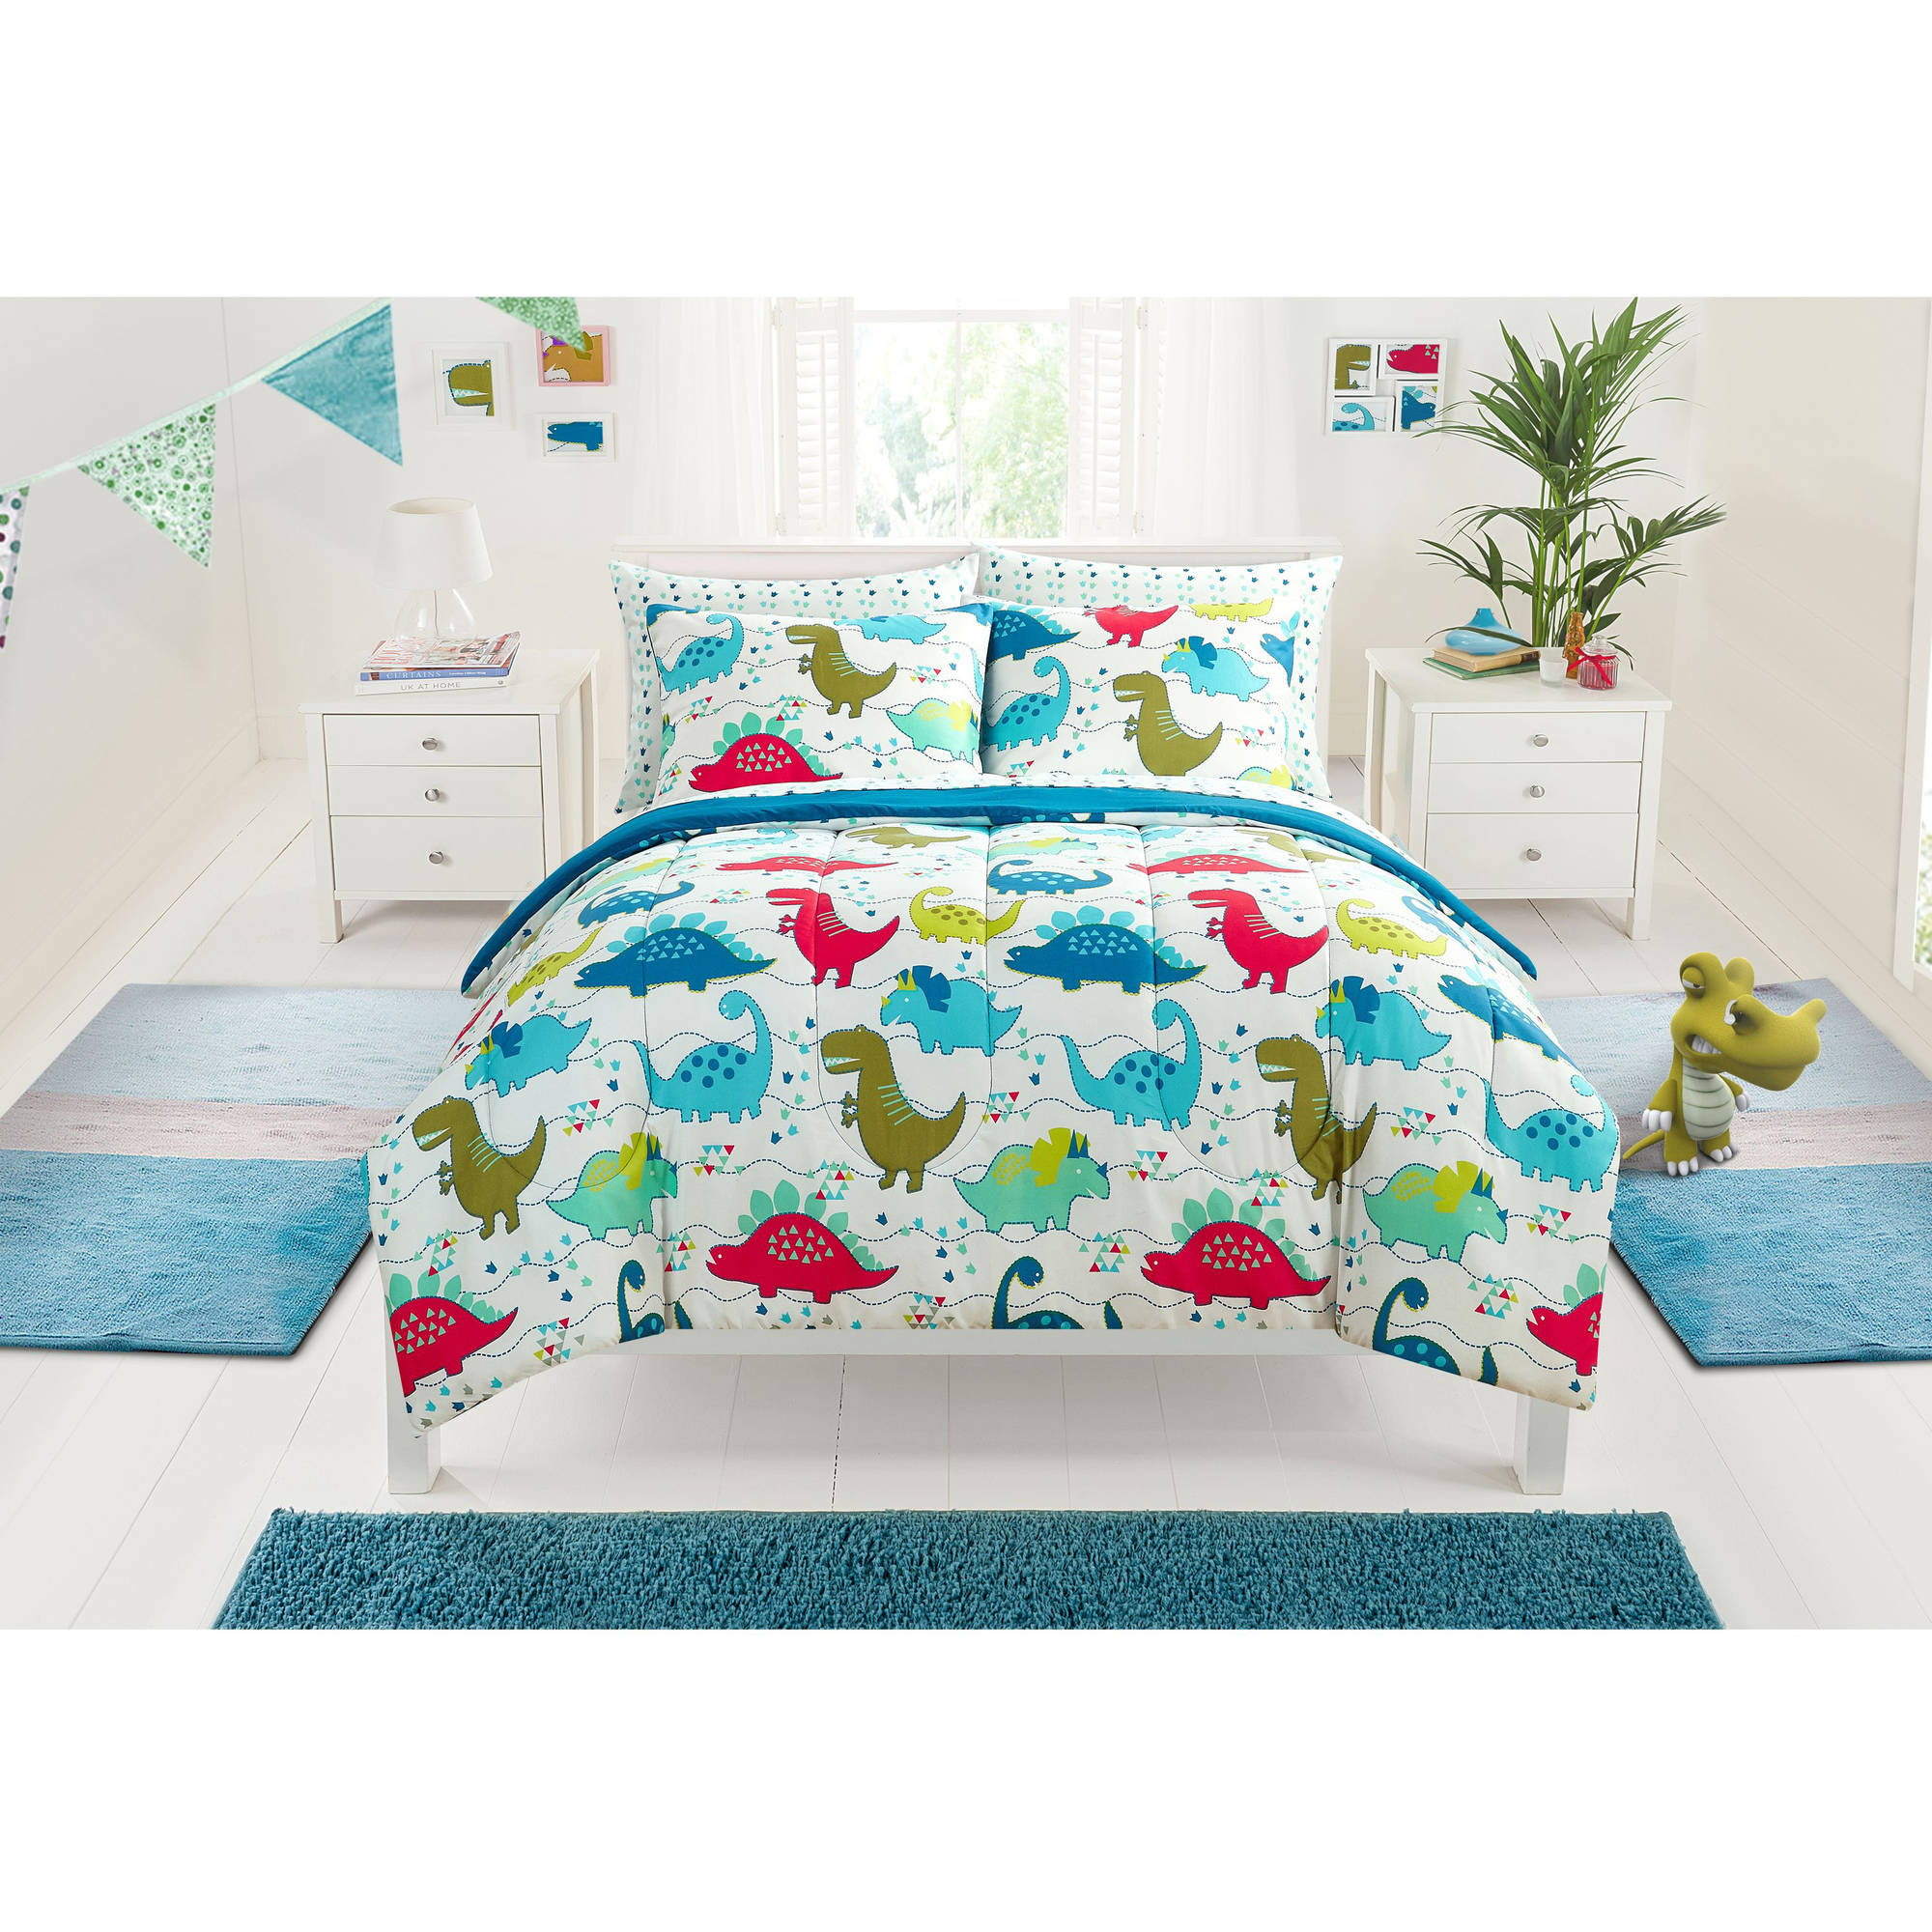 Mainstays Kids Dino Roar Bed in a Bag Bedding Set by Idea Nuova